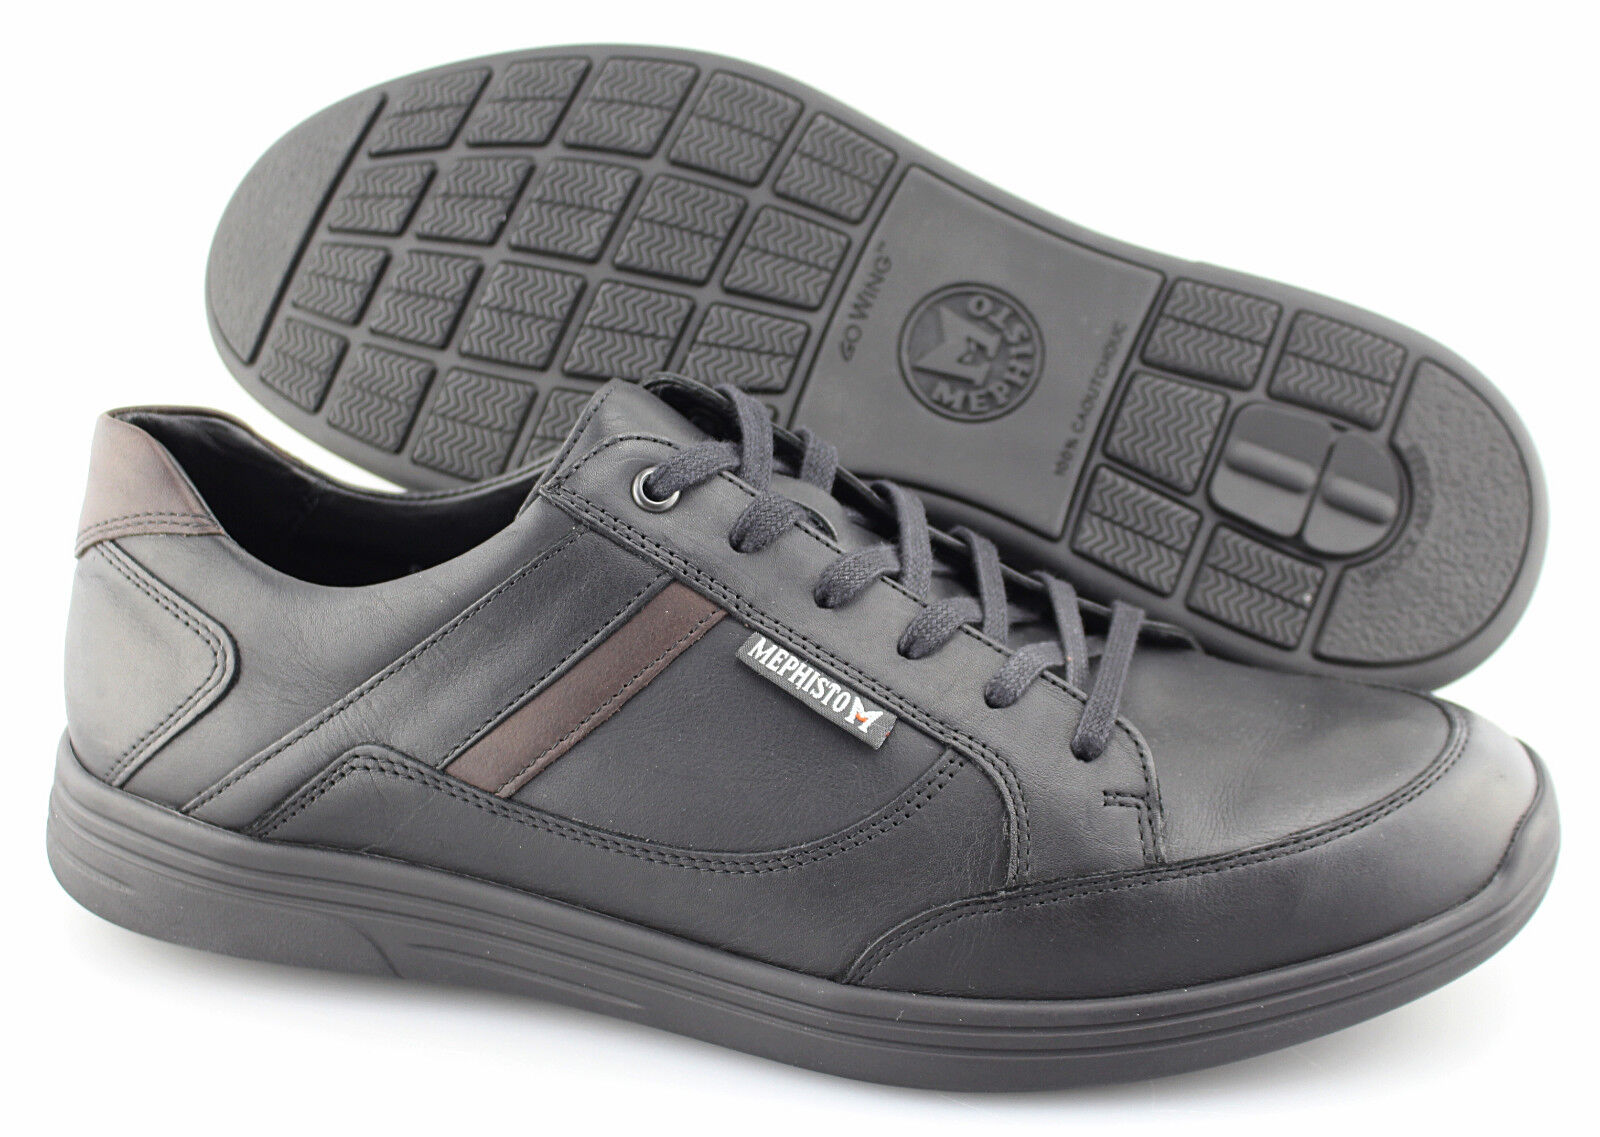 Men's MEPHISTO 'Frank Go Wing' Black Leather Sneakers Size US 11 EUR 10.5